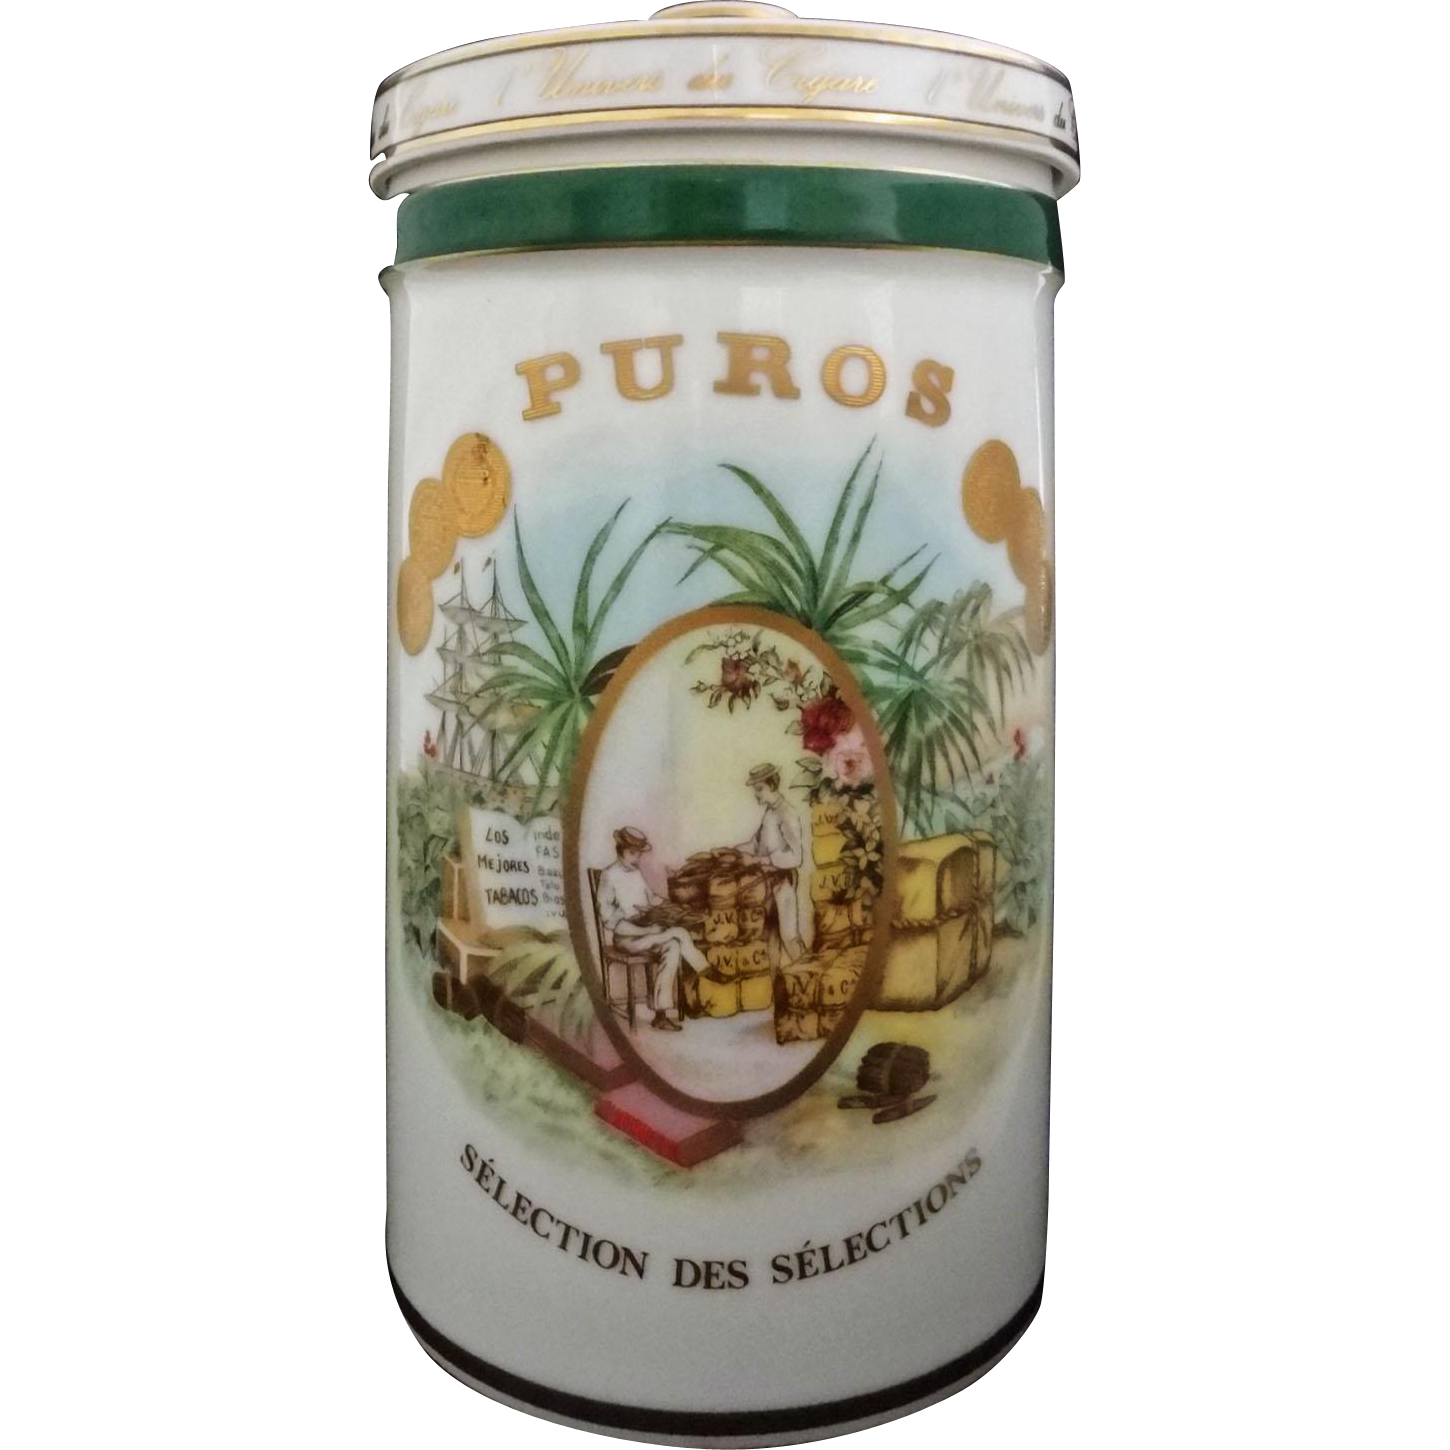 Cigar Humidor Gerard Pere et Fils Jar Porcelain Container Bernardaud - 20th Century, France